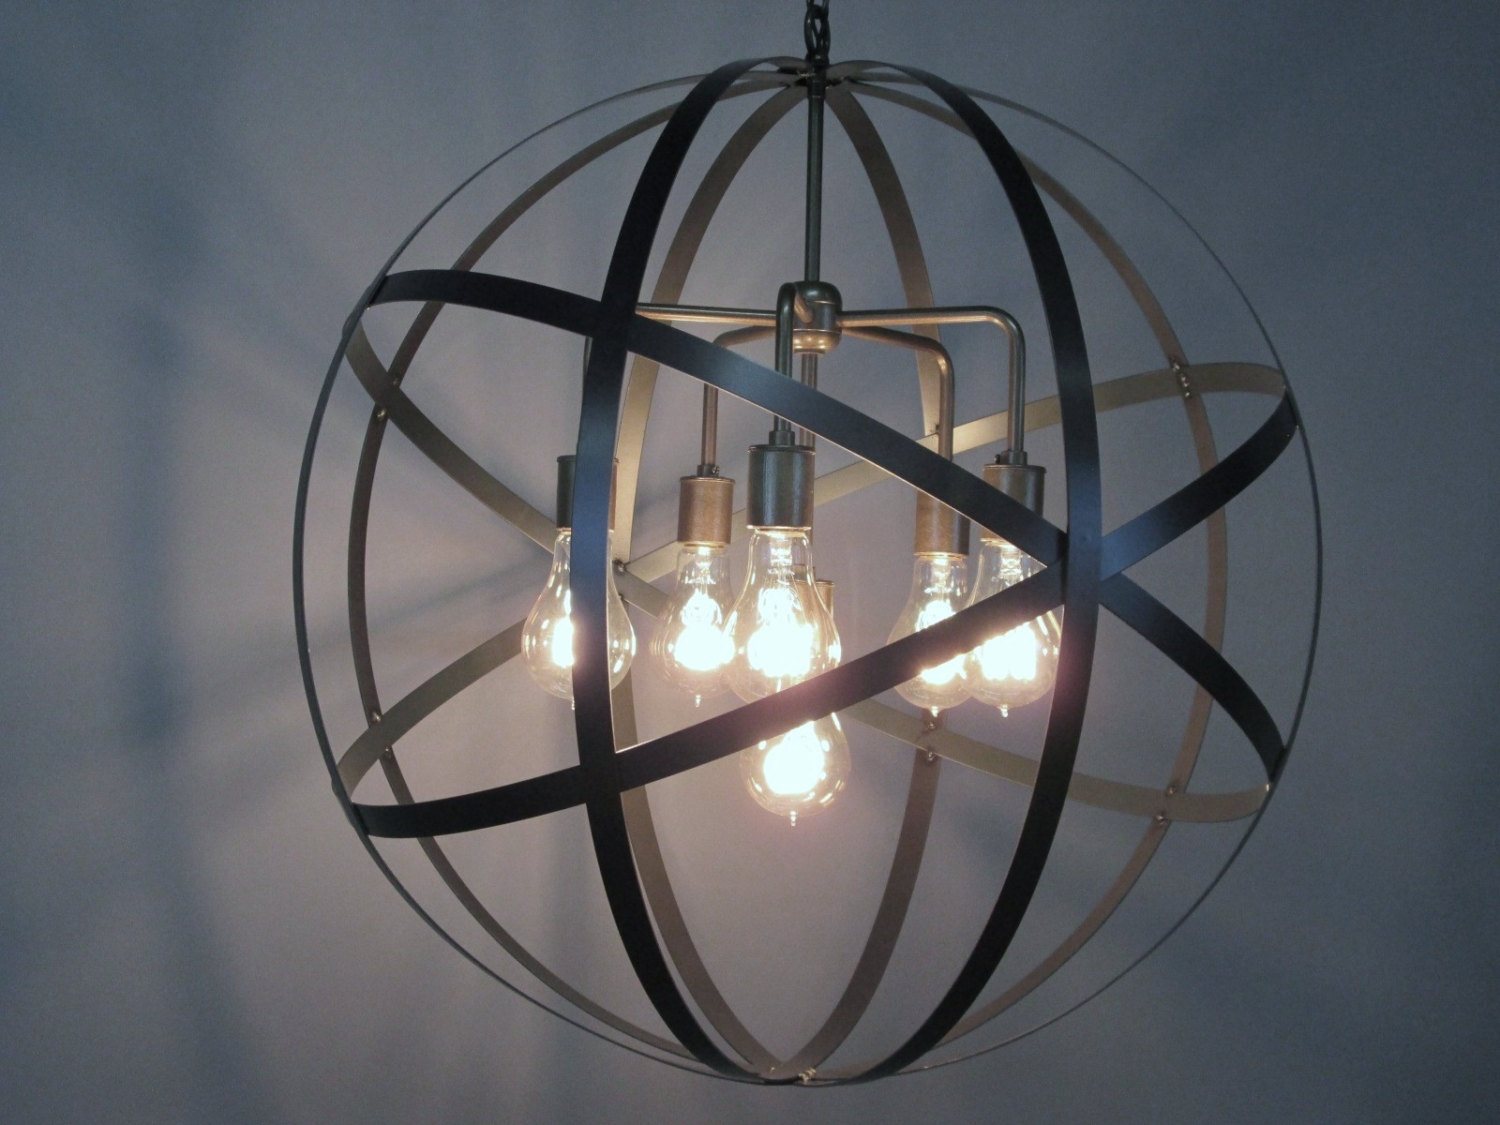 Industrial Orb Chandelier Ceiling Light Sphere 24 Intended For Orb Chandeliers (Image 17 of 25)